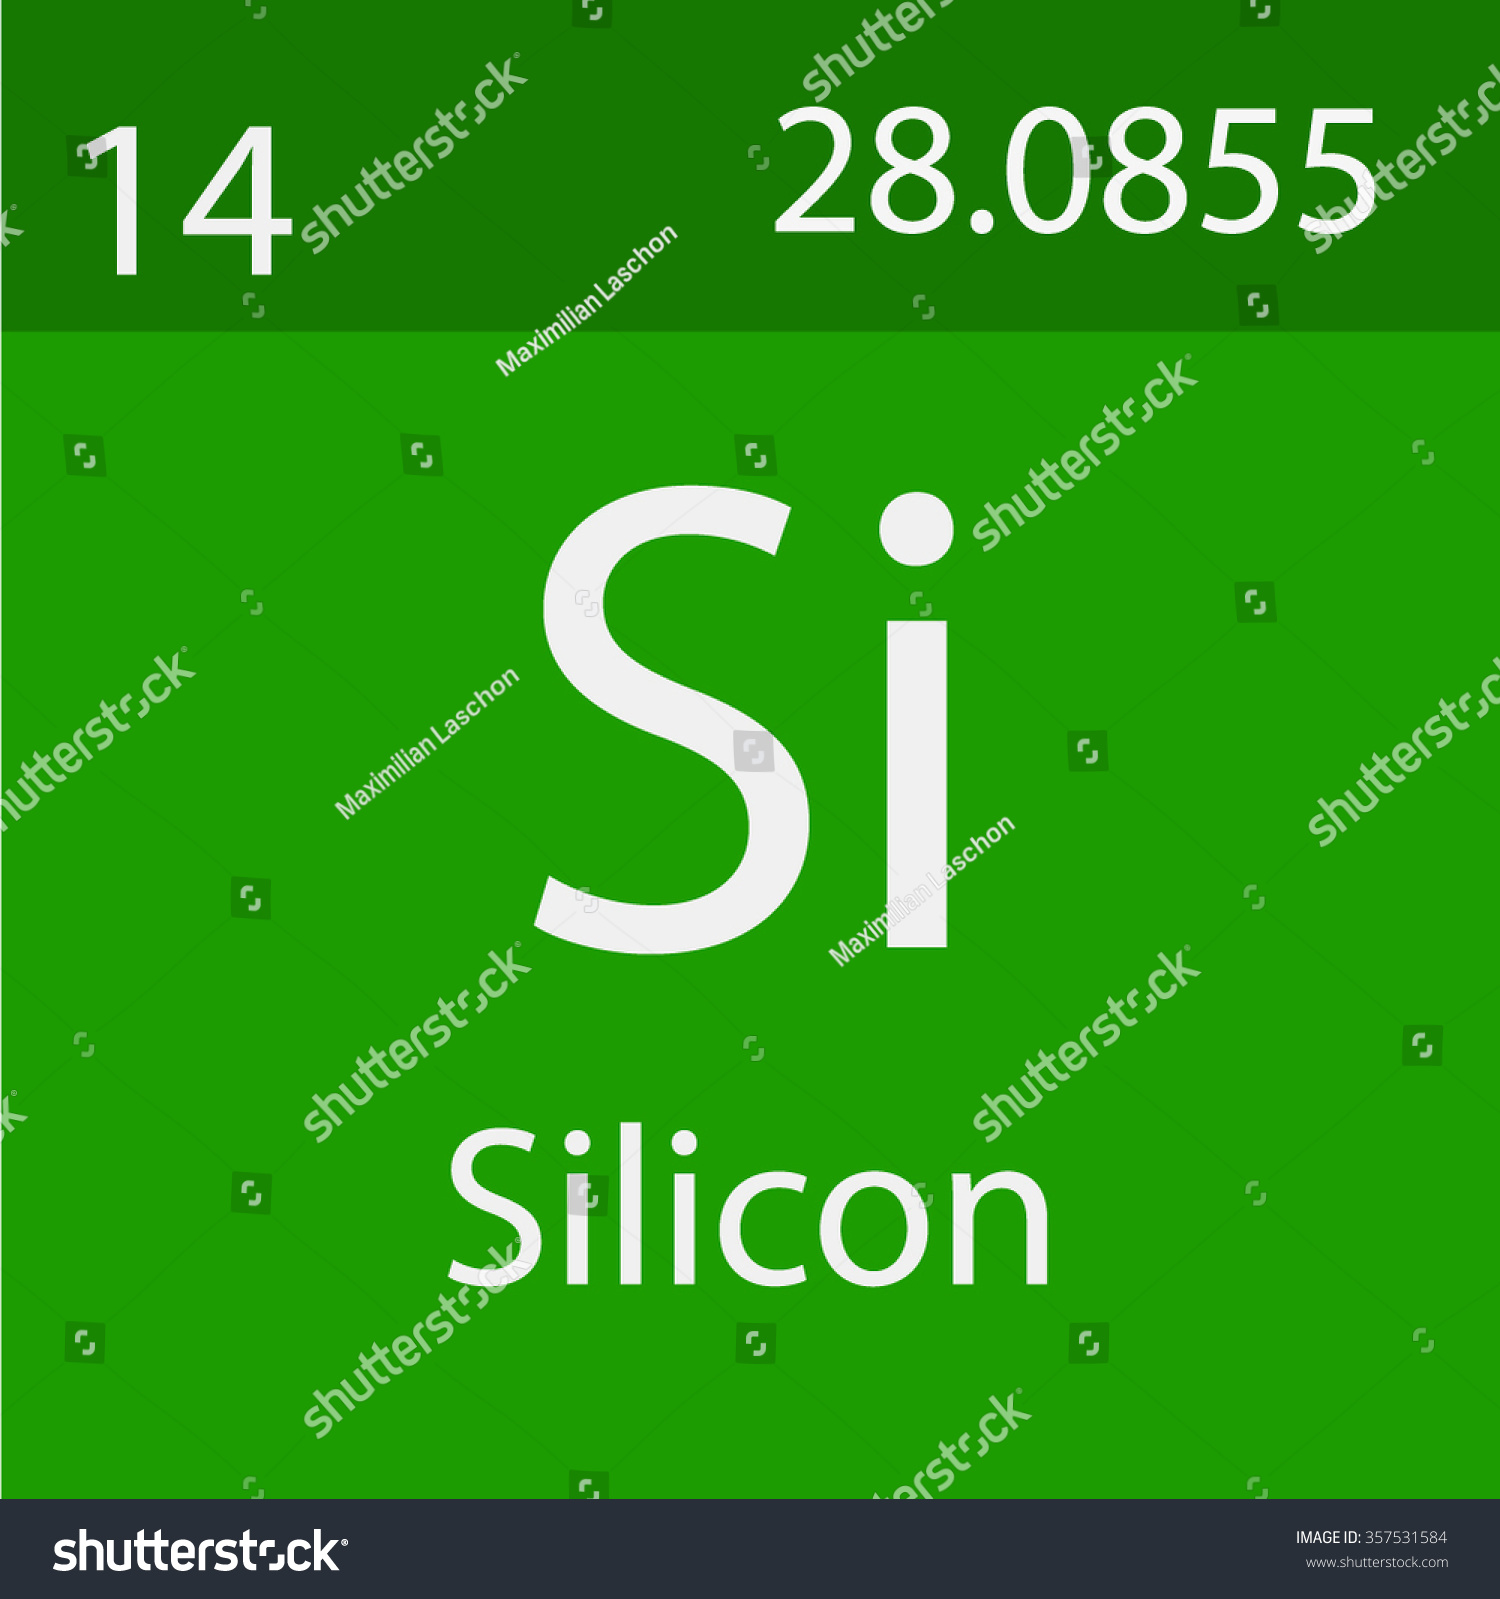 Silicon Chemical Symbol Stock Vector Royalty Free 357531584